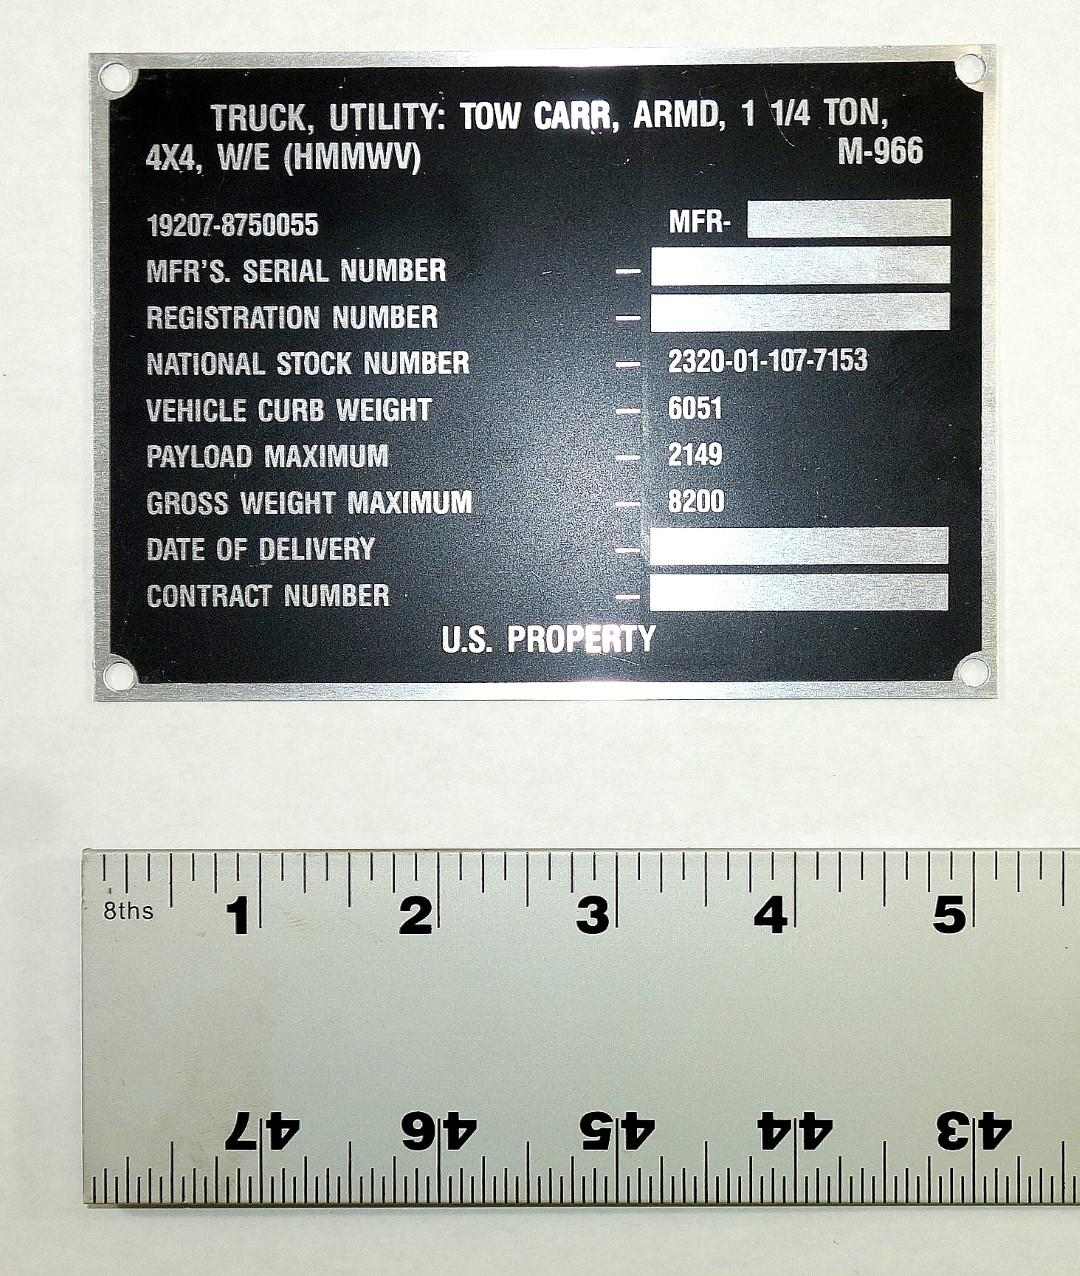 DT-428 | 9905-01-185-3134 Decal Dataplate M966 for HMMWV NOS (2).JPG